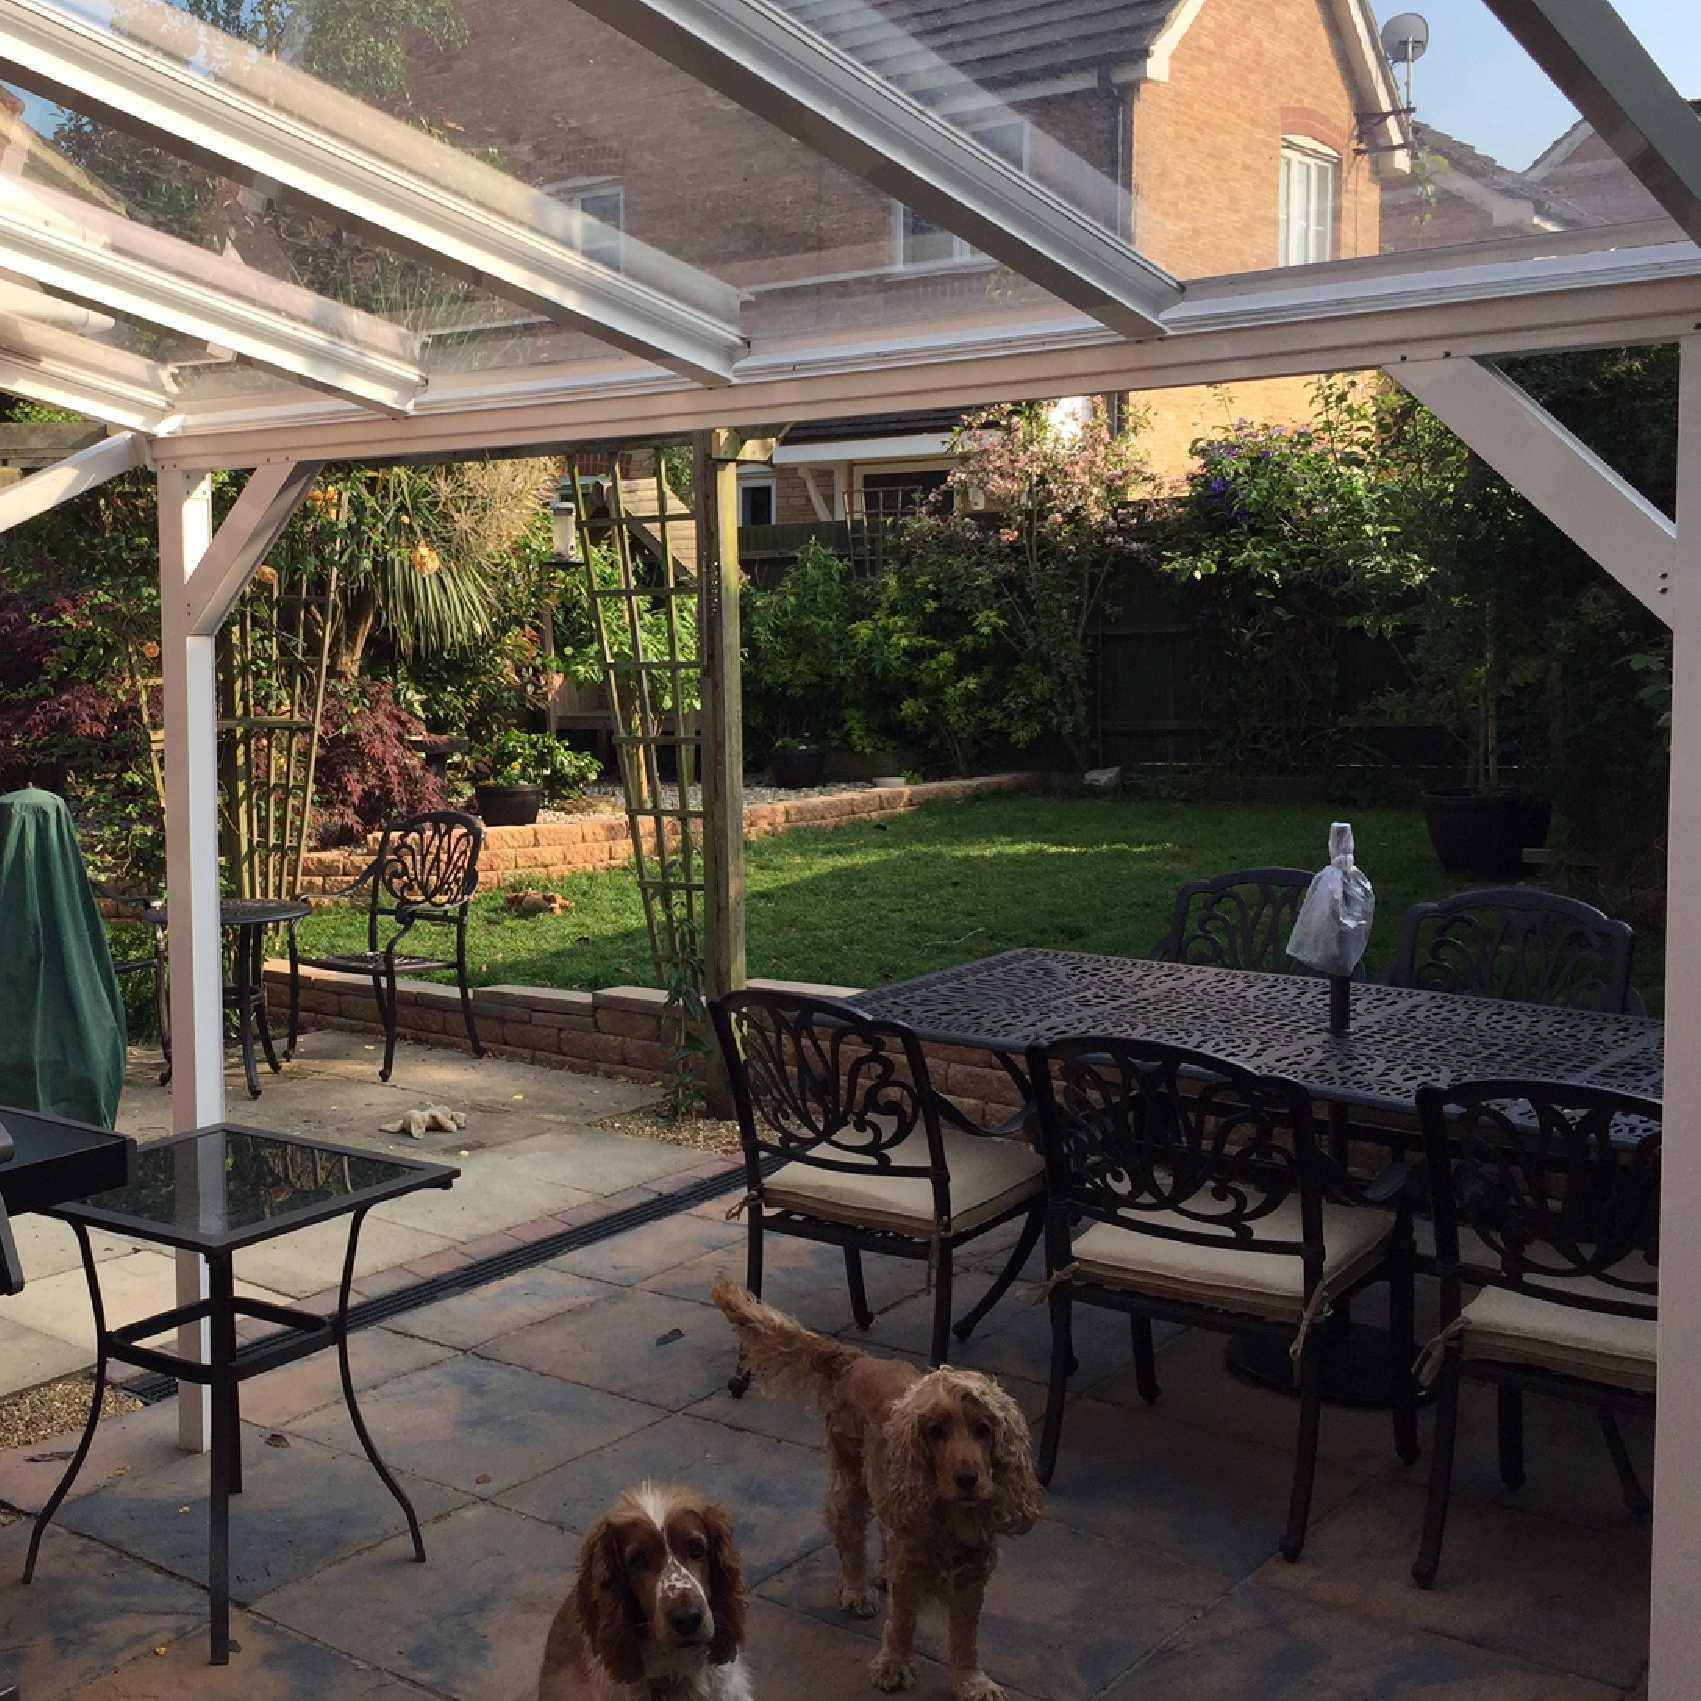 Affordable Omega Smart Lean-To Canopy with 6mm Glass Clear Plate Polycarbonate Glazing - 5.6m (W) x 3.5m (P), (3) Supporting Posts